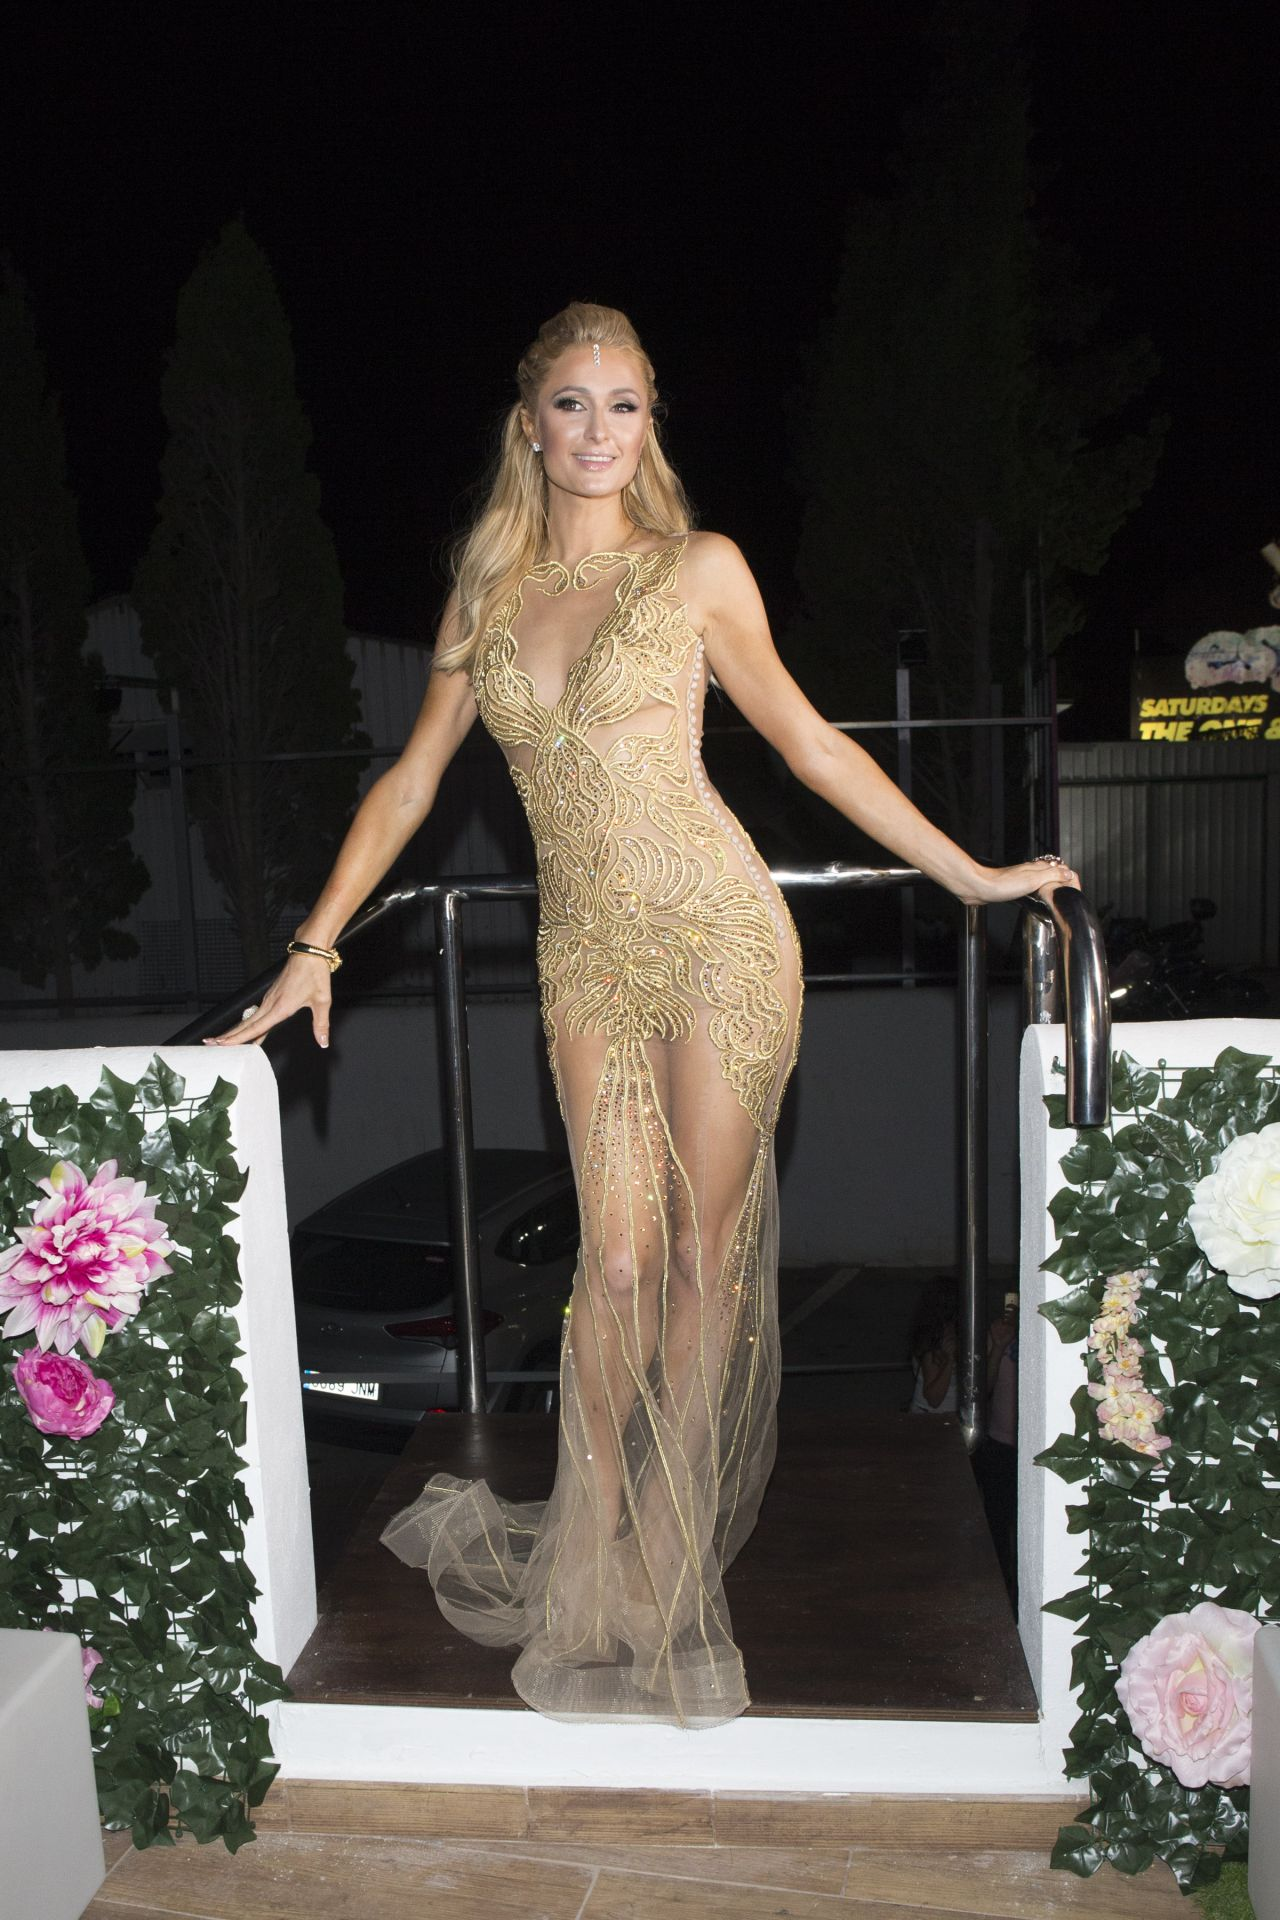 Paris Hilton Foam Amp Diamonds Opening Party In Ibiza 7